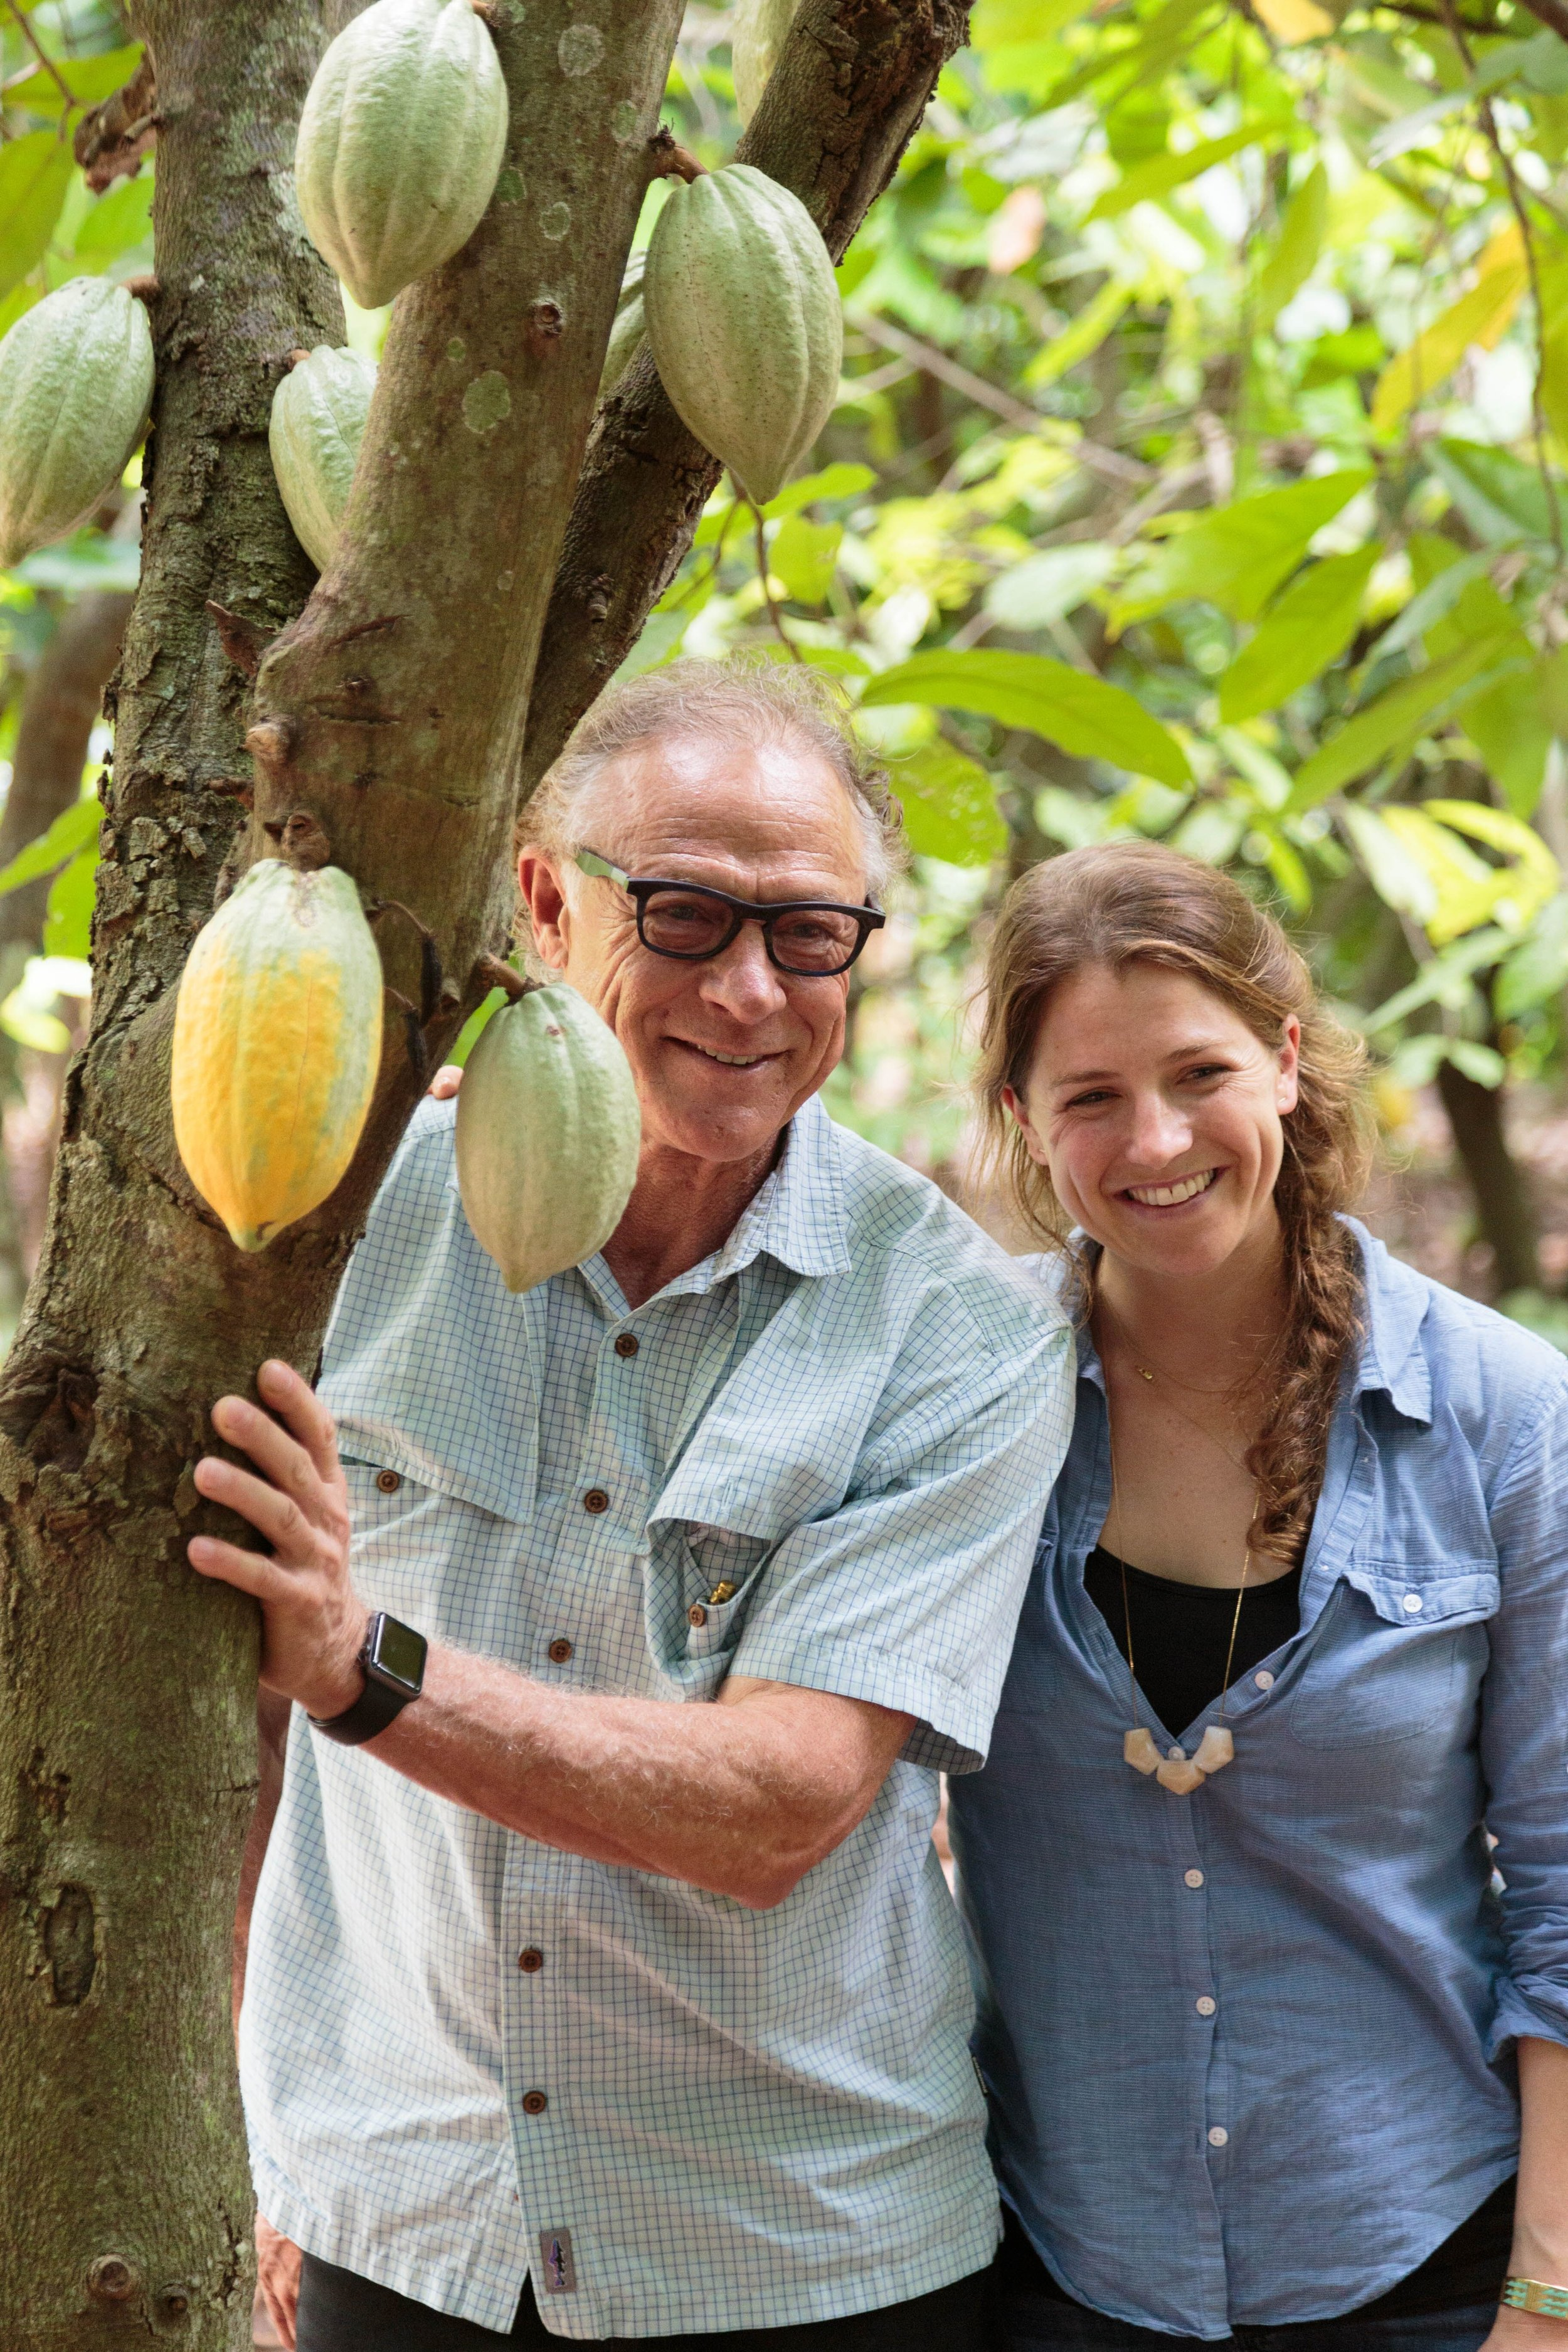 Gary Guittard and Amy Guittard. Photo credit: Guittard Chocolate Company